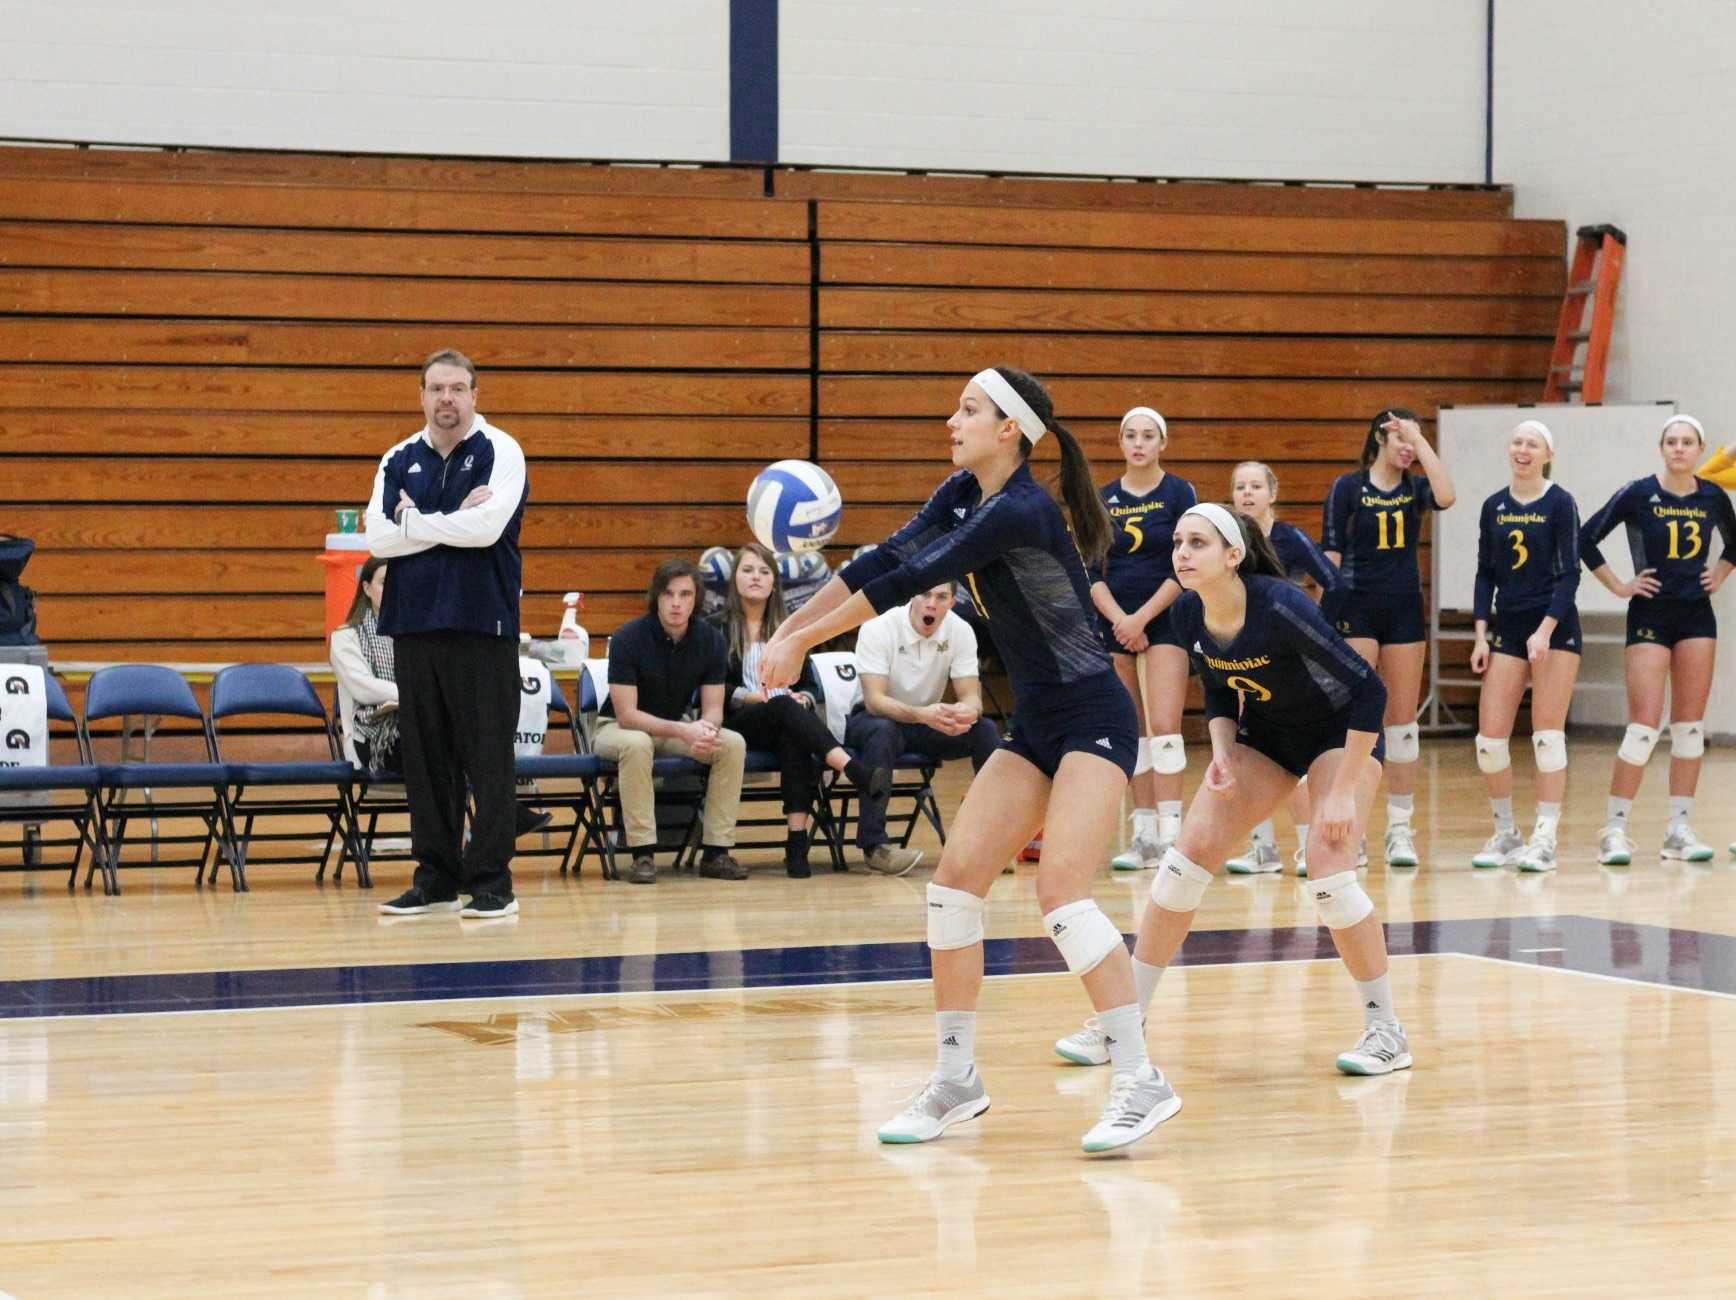 Quinnipiac volleyball falls in regular season finale